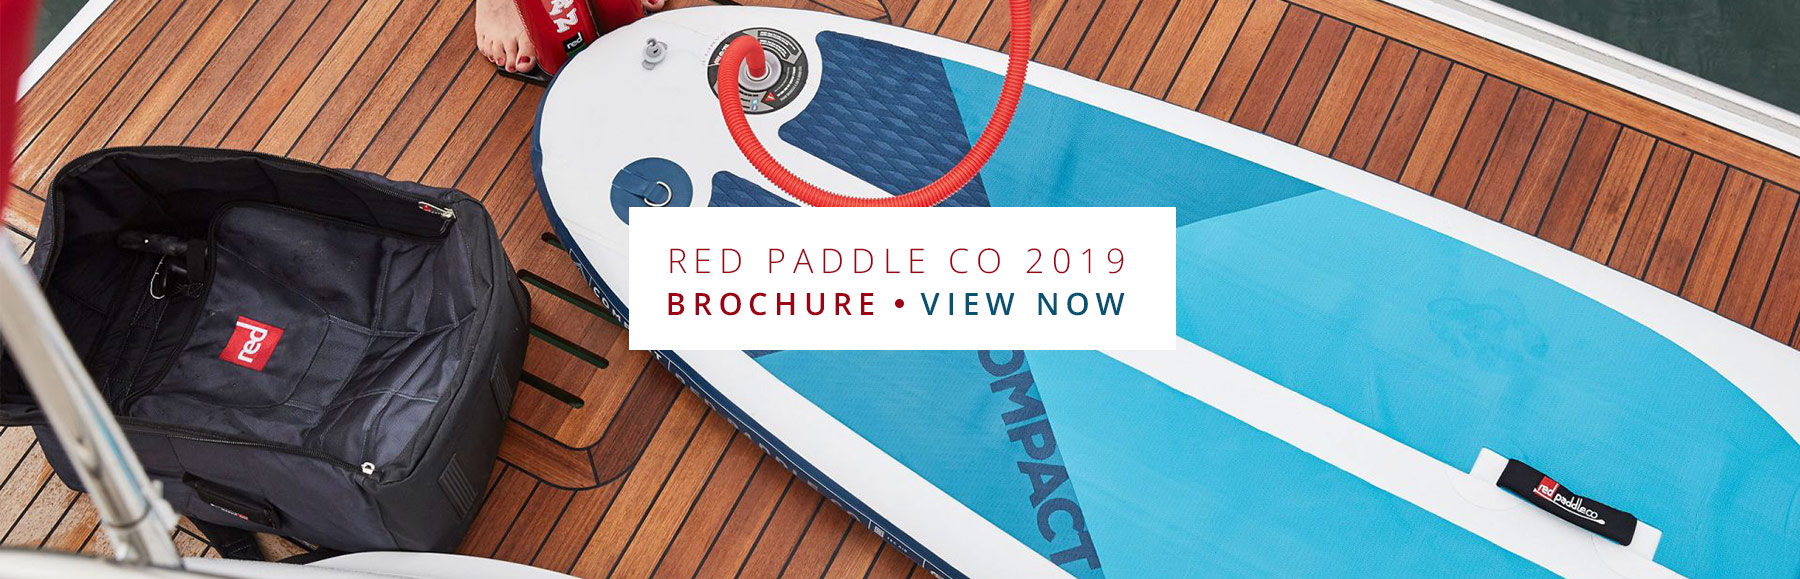 Red Paddle Co 2019 Brochure